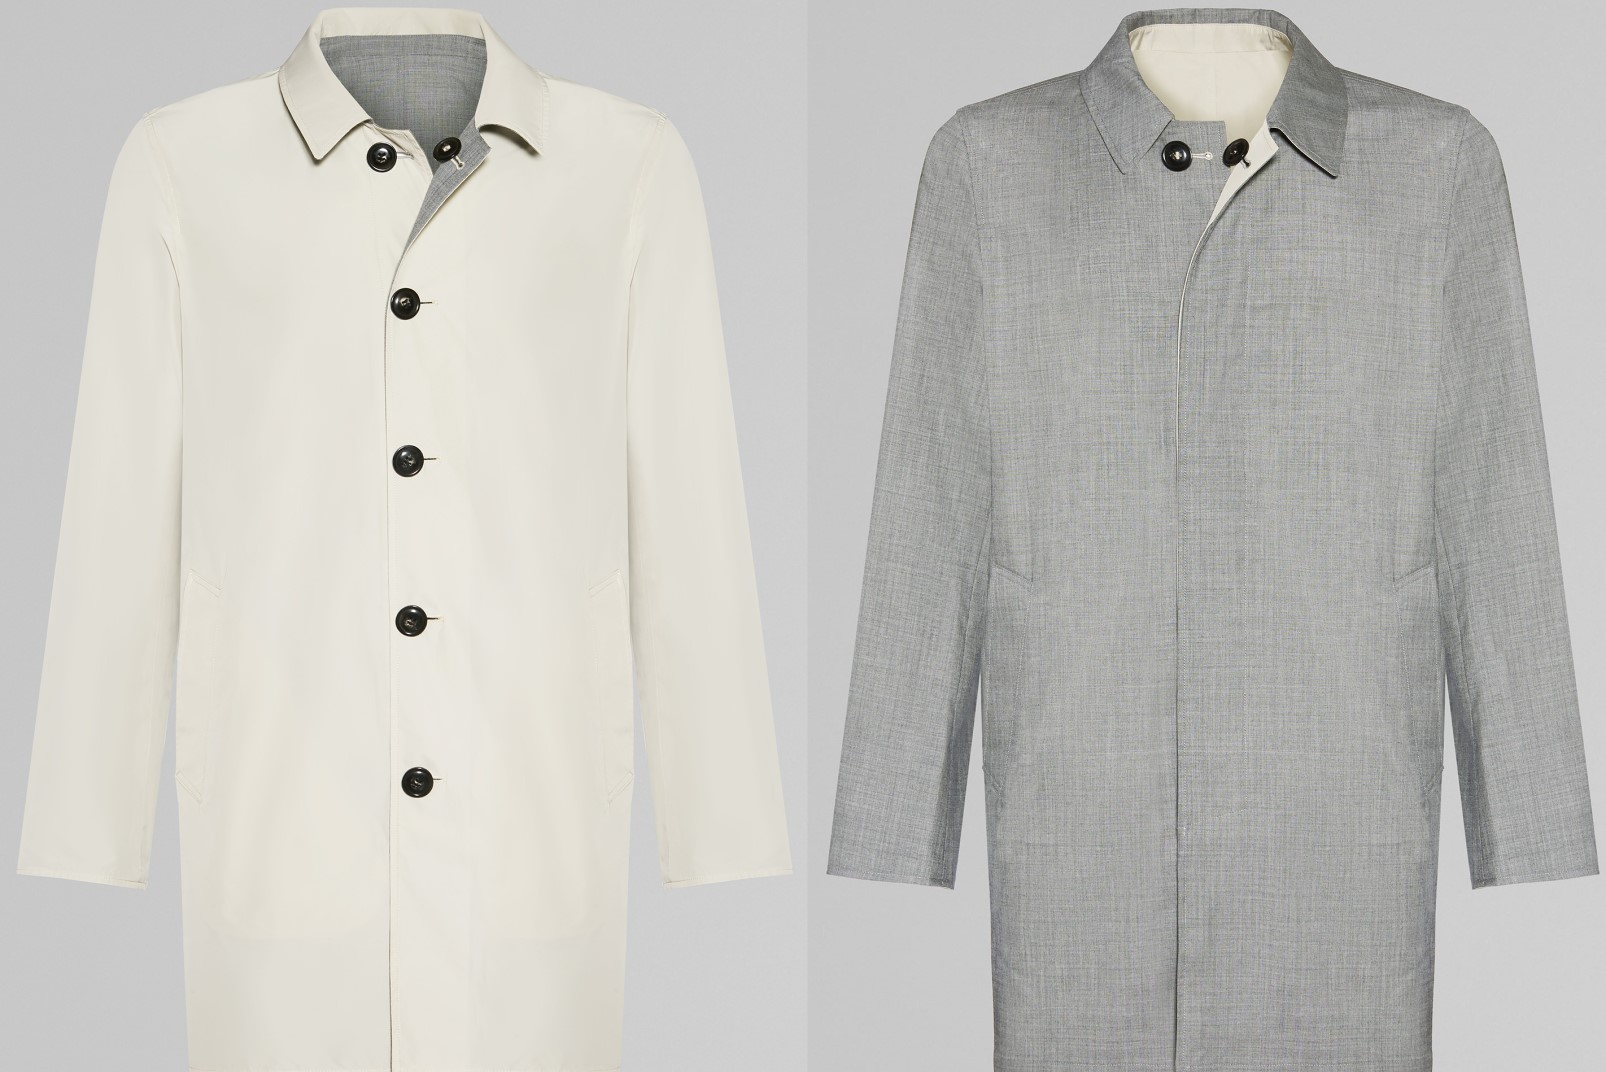 Two looks in one, the reversible raincoat